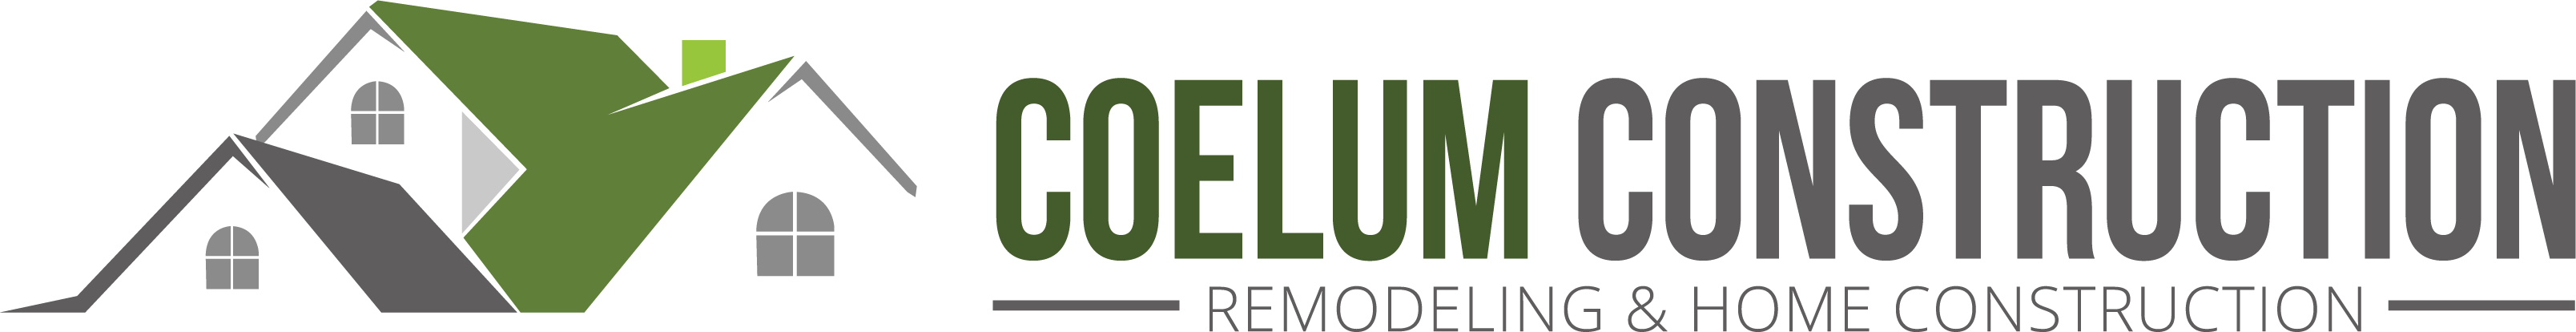 cropped-CoelumConstruction_LogoHoriz.png